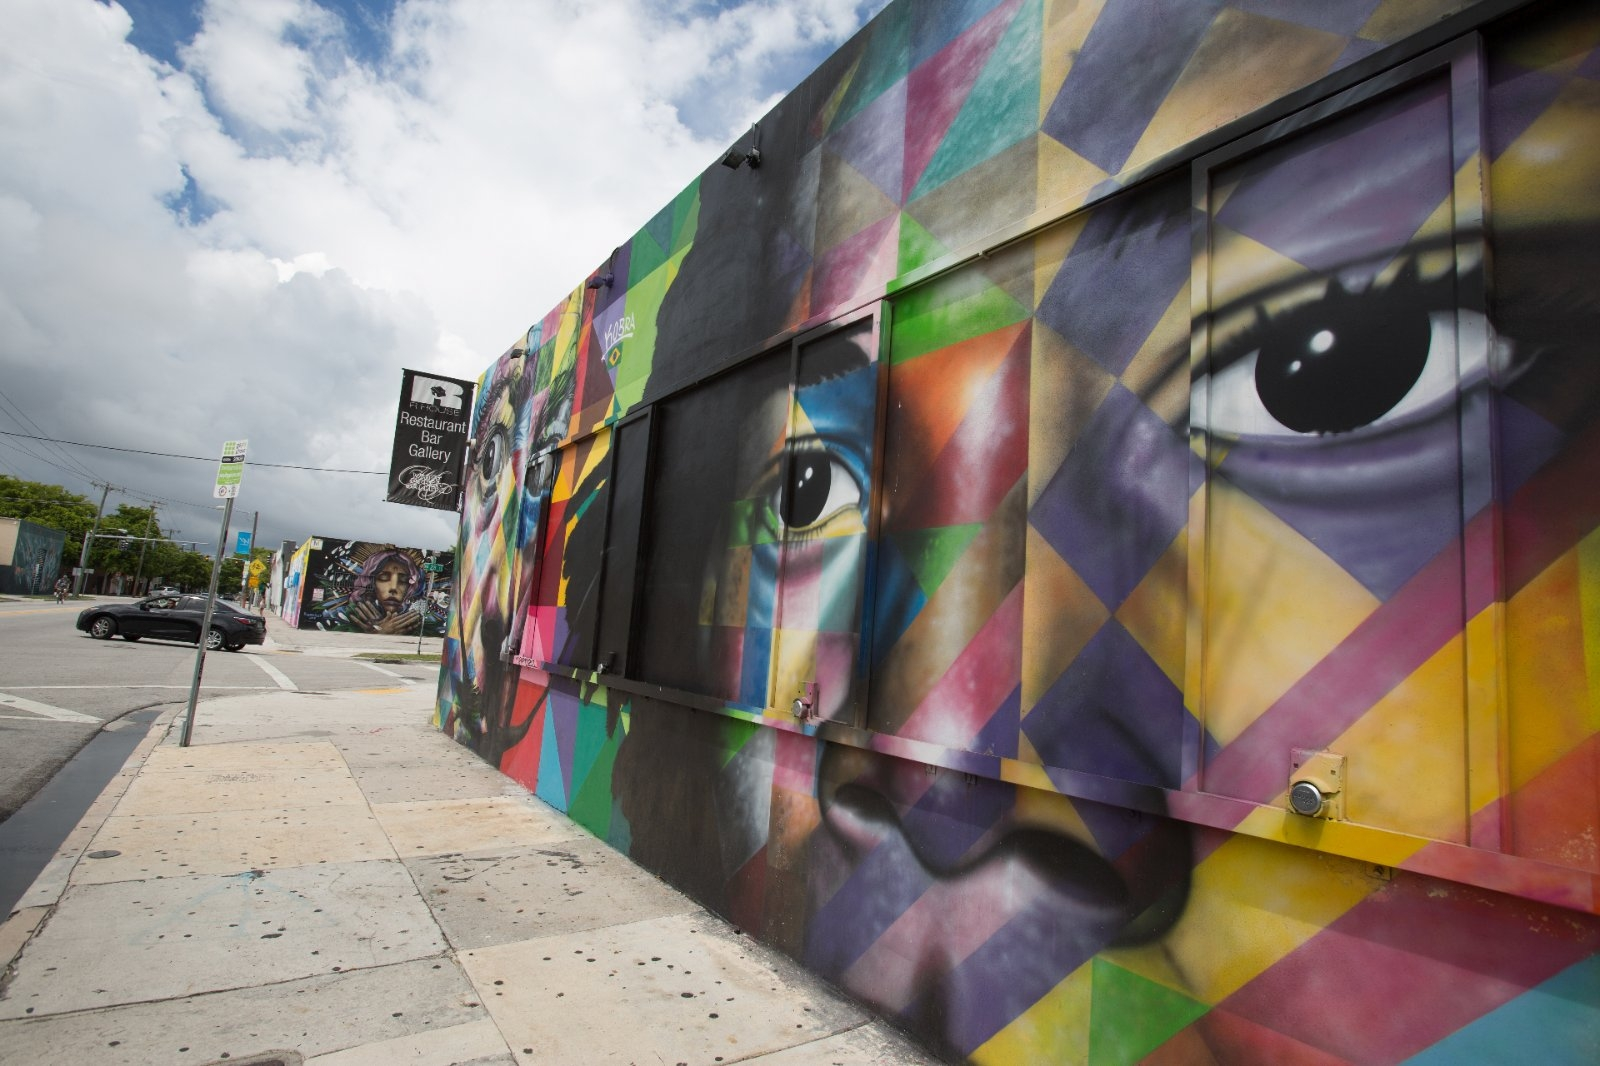 Street art in the Wynwood Walls area of Miami.